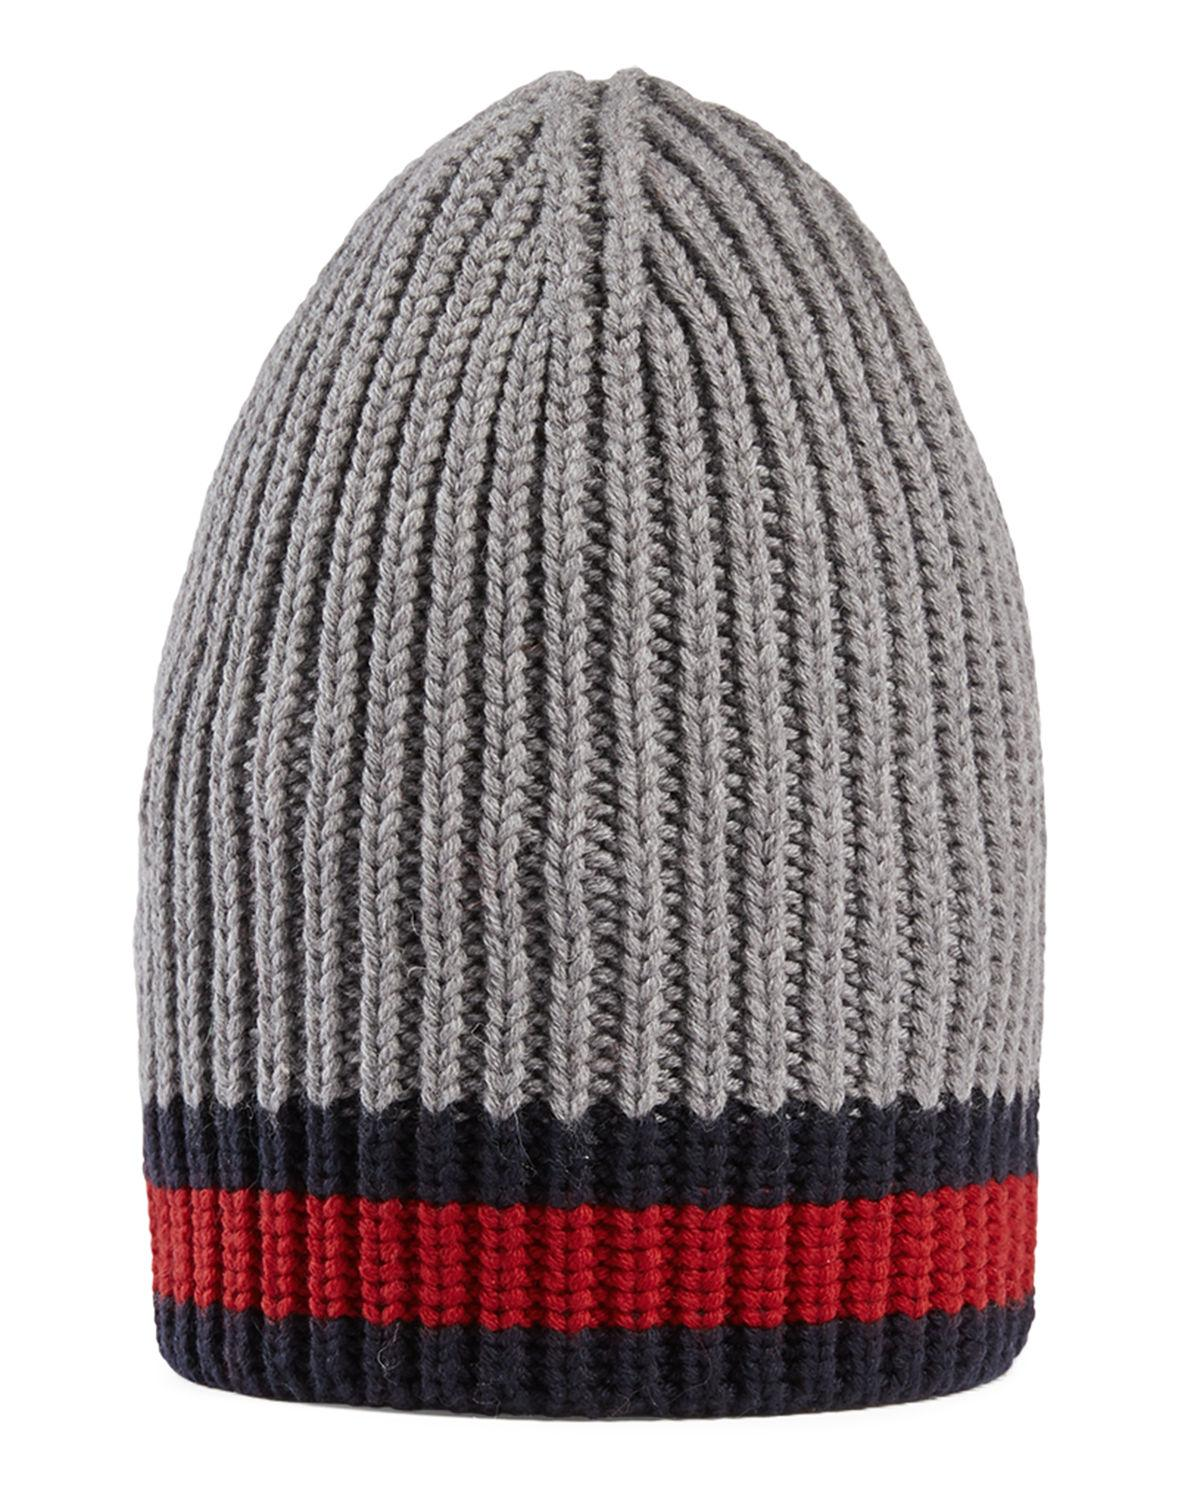 Gucci Hats For Men: Gucci Wool Beanie Hat W/web For Men